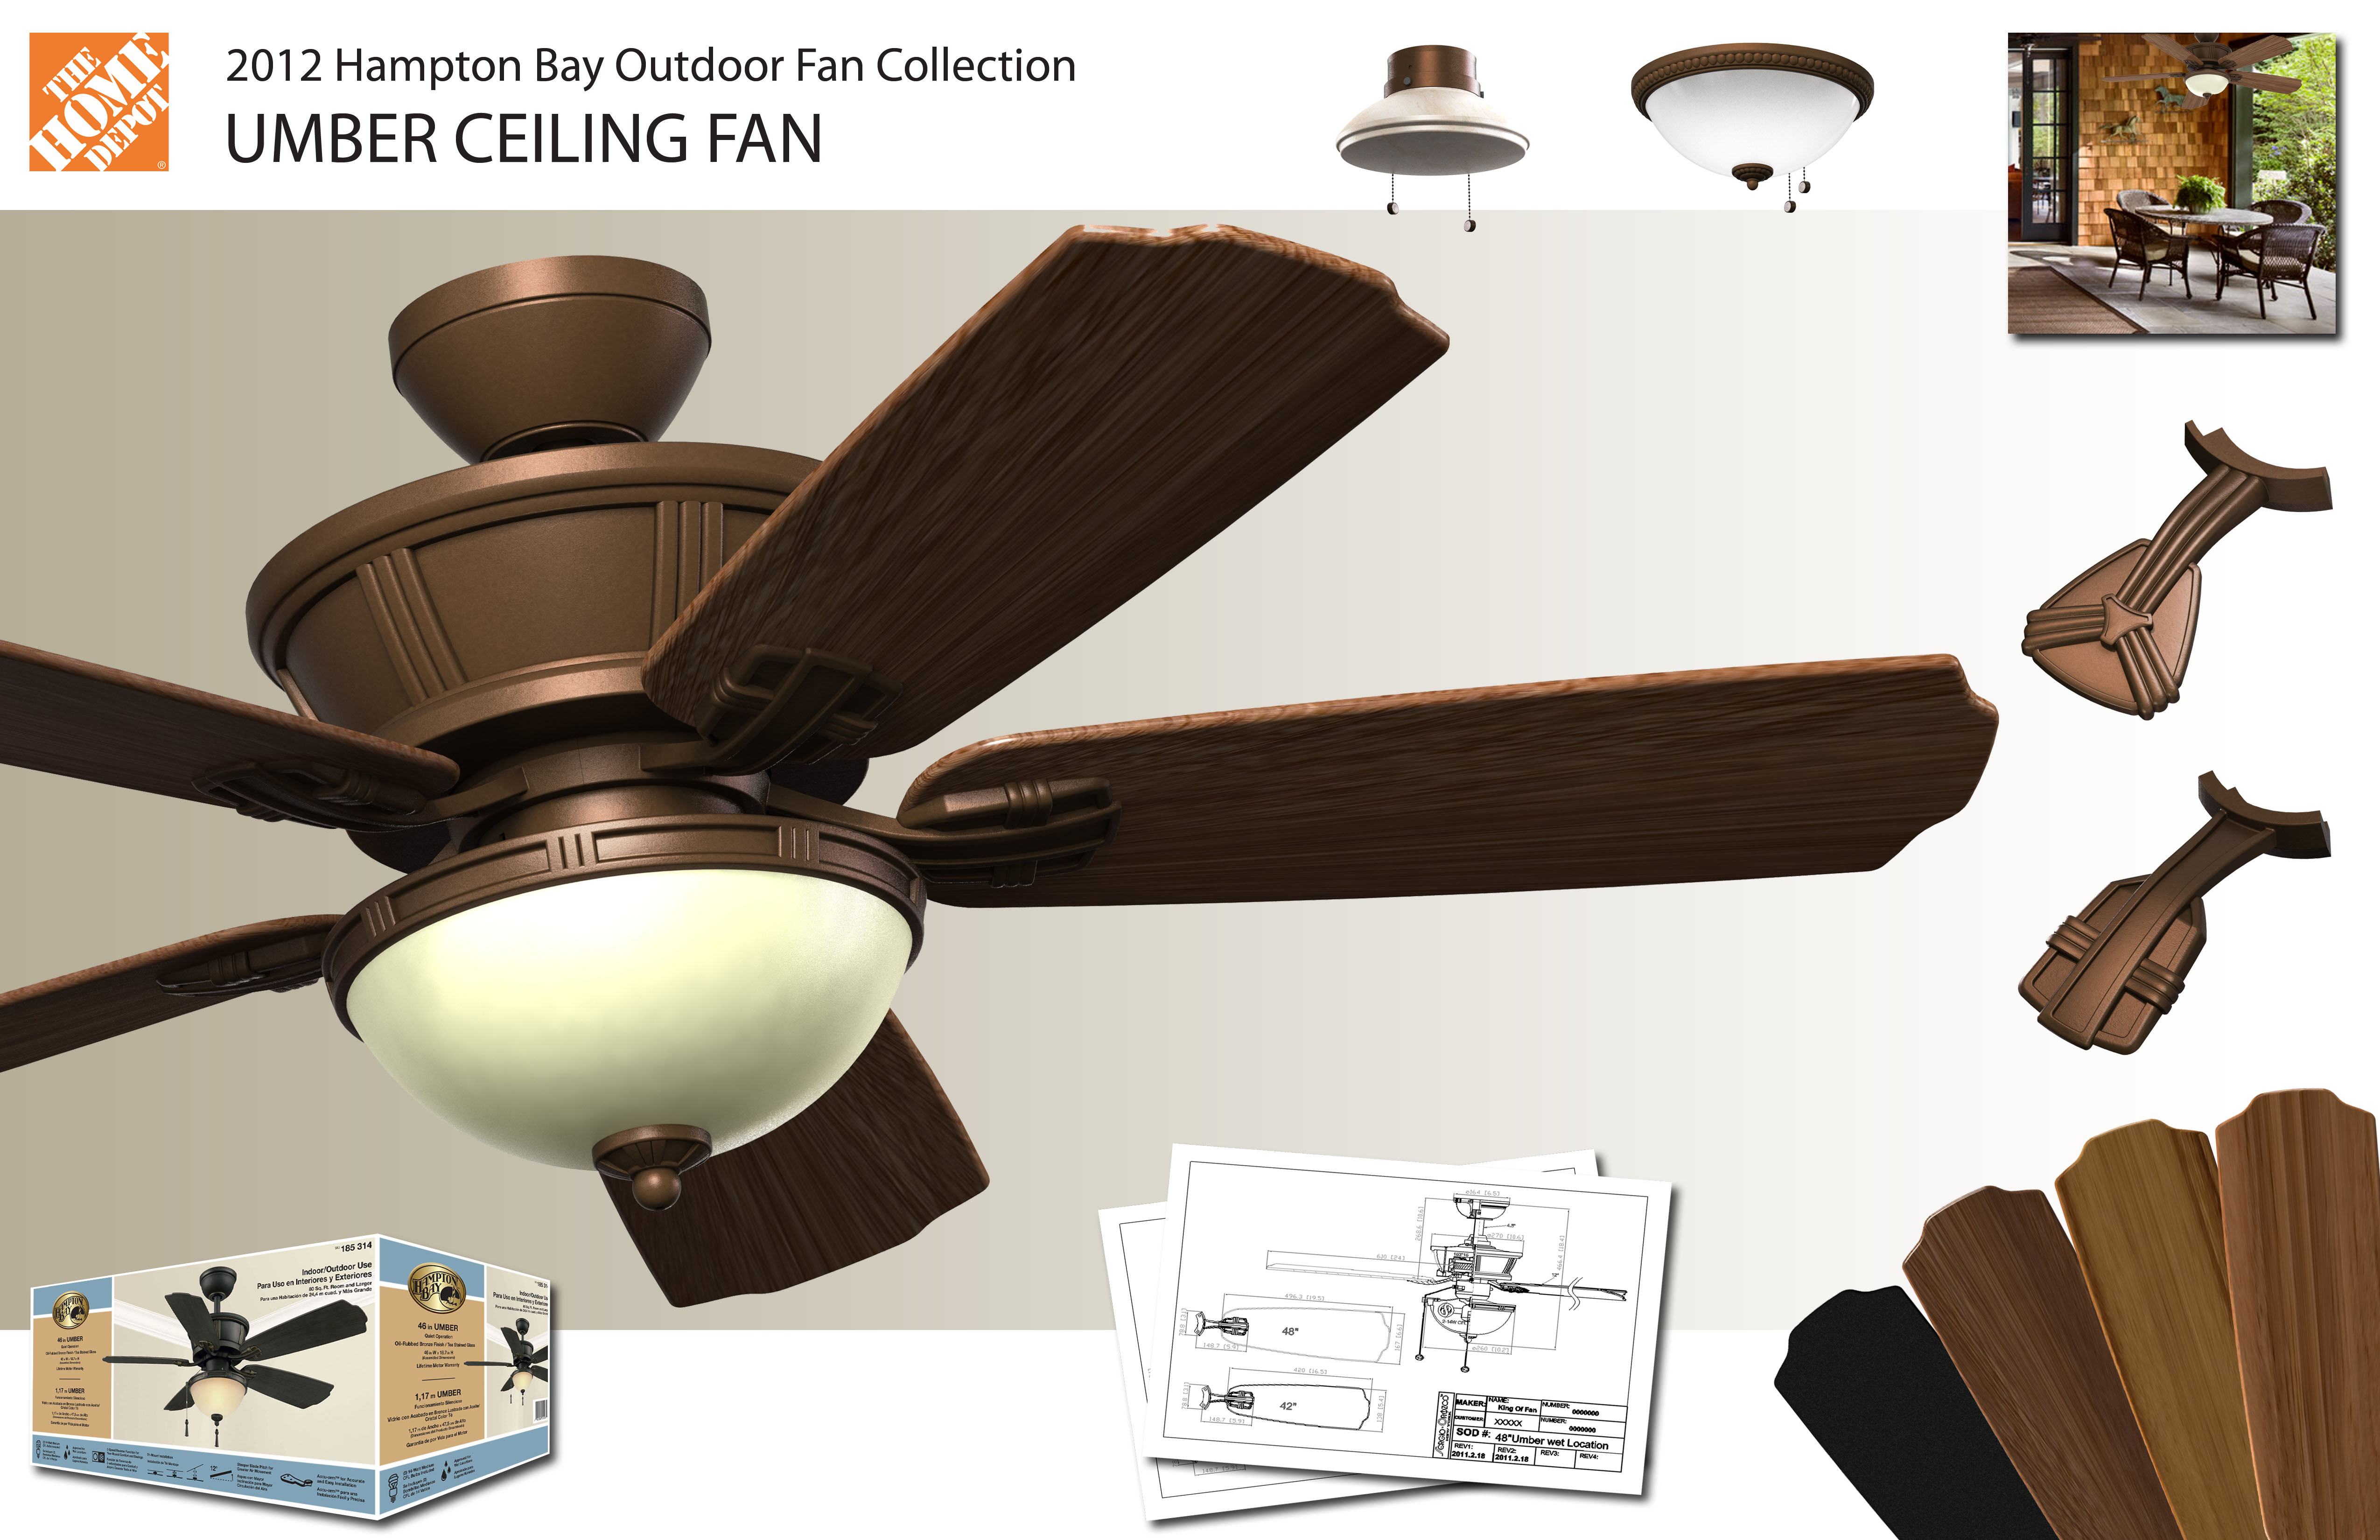 hampton bay umber ceiling fan by francisco biancuzzo at